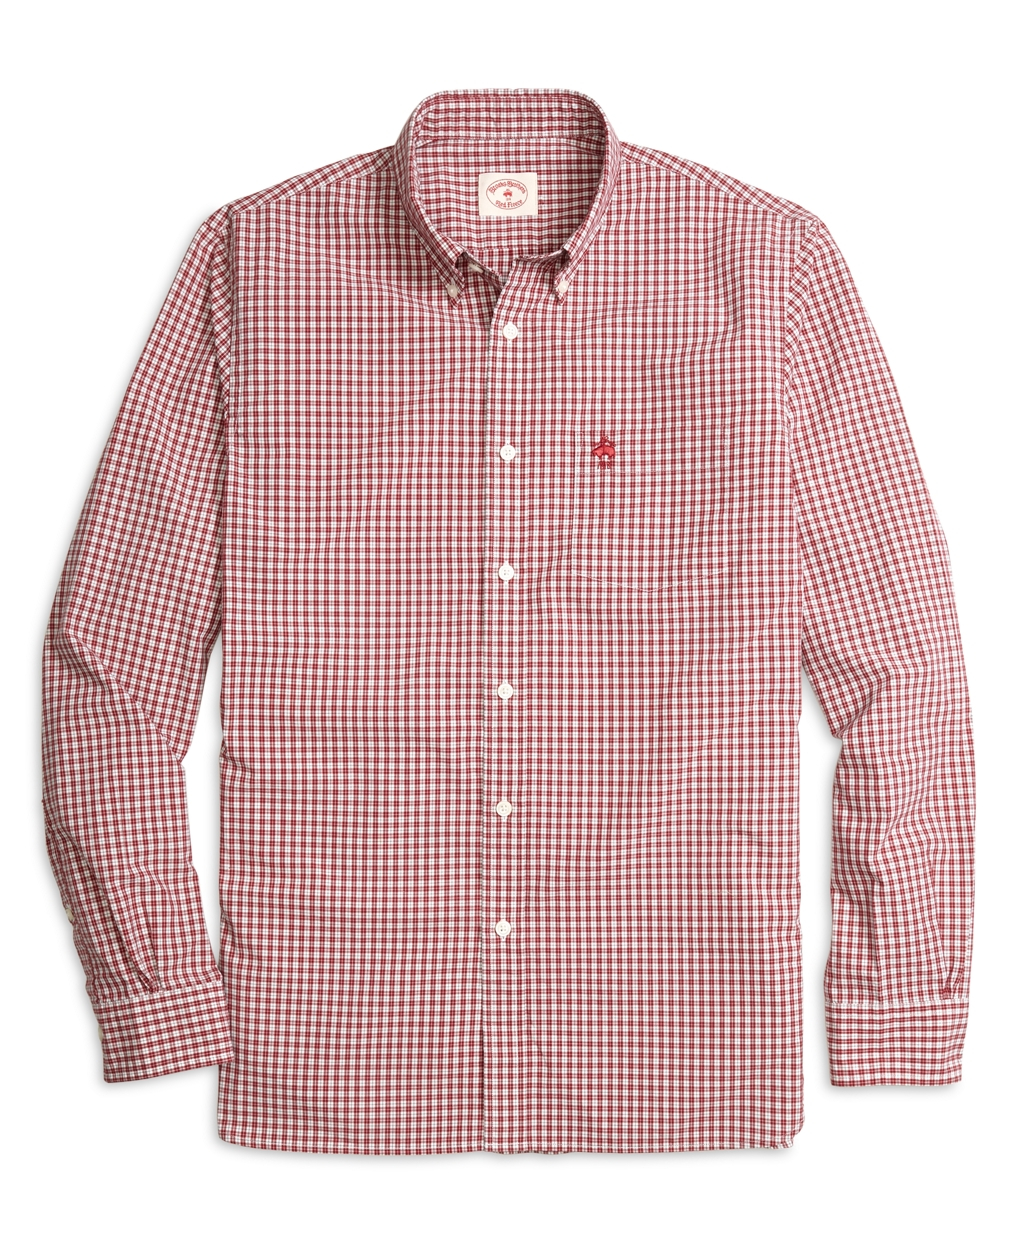 Lyst brooks brothers mini check sport shirt in red for men for Brooks brothers sports shirts